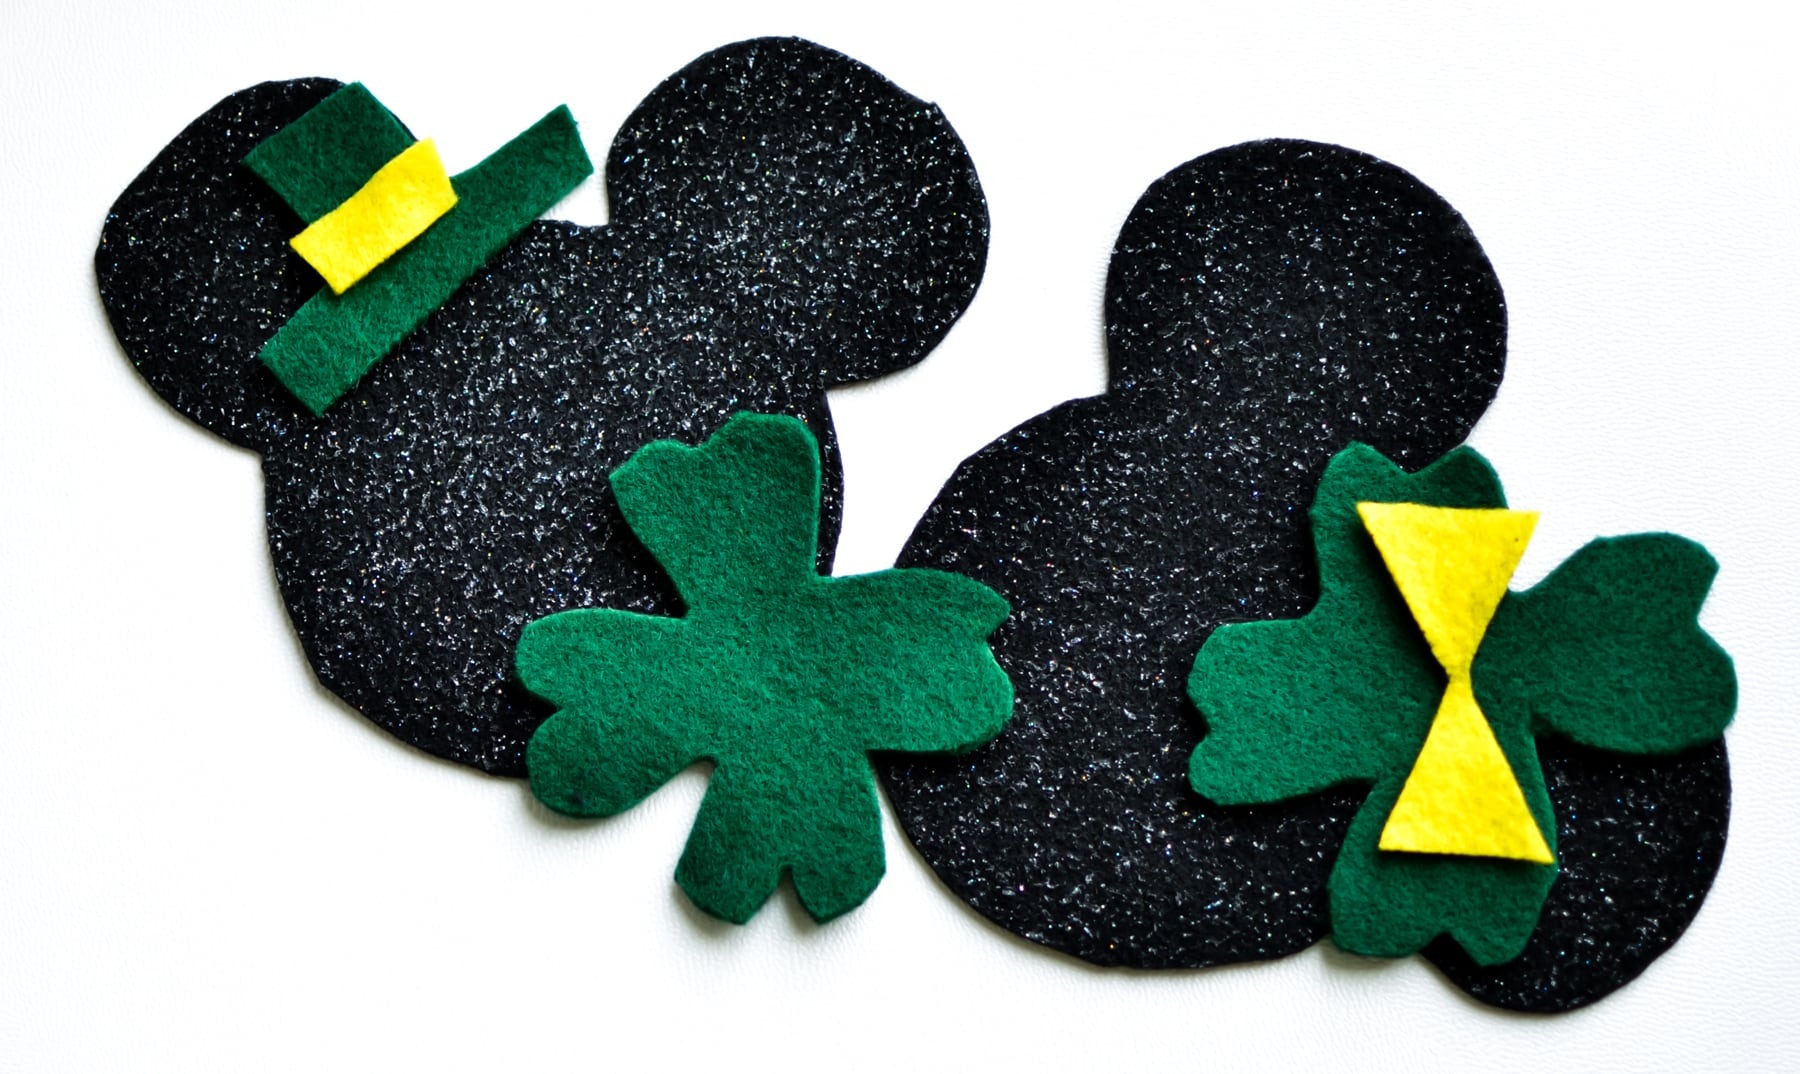 St. Patrick's Day Felt Craft - Featuring Mickey and Minnie Mouse for a fun activity for kids this holiday. A fun way to celebrate St. Patrick's Day with more magic!